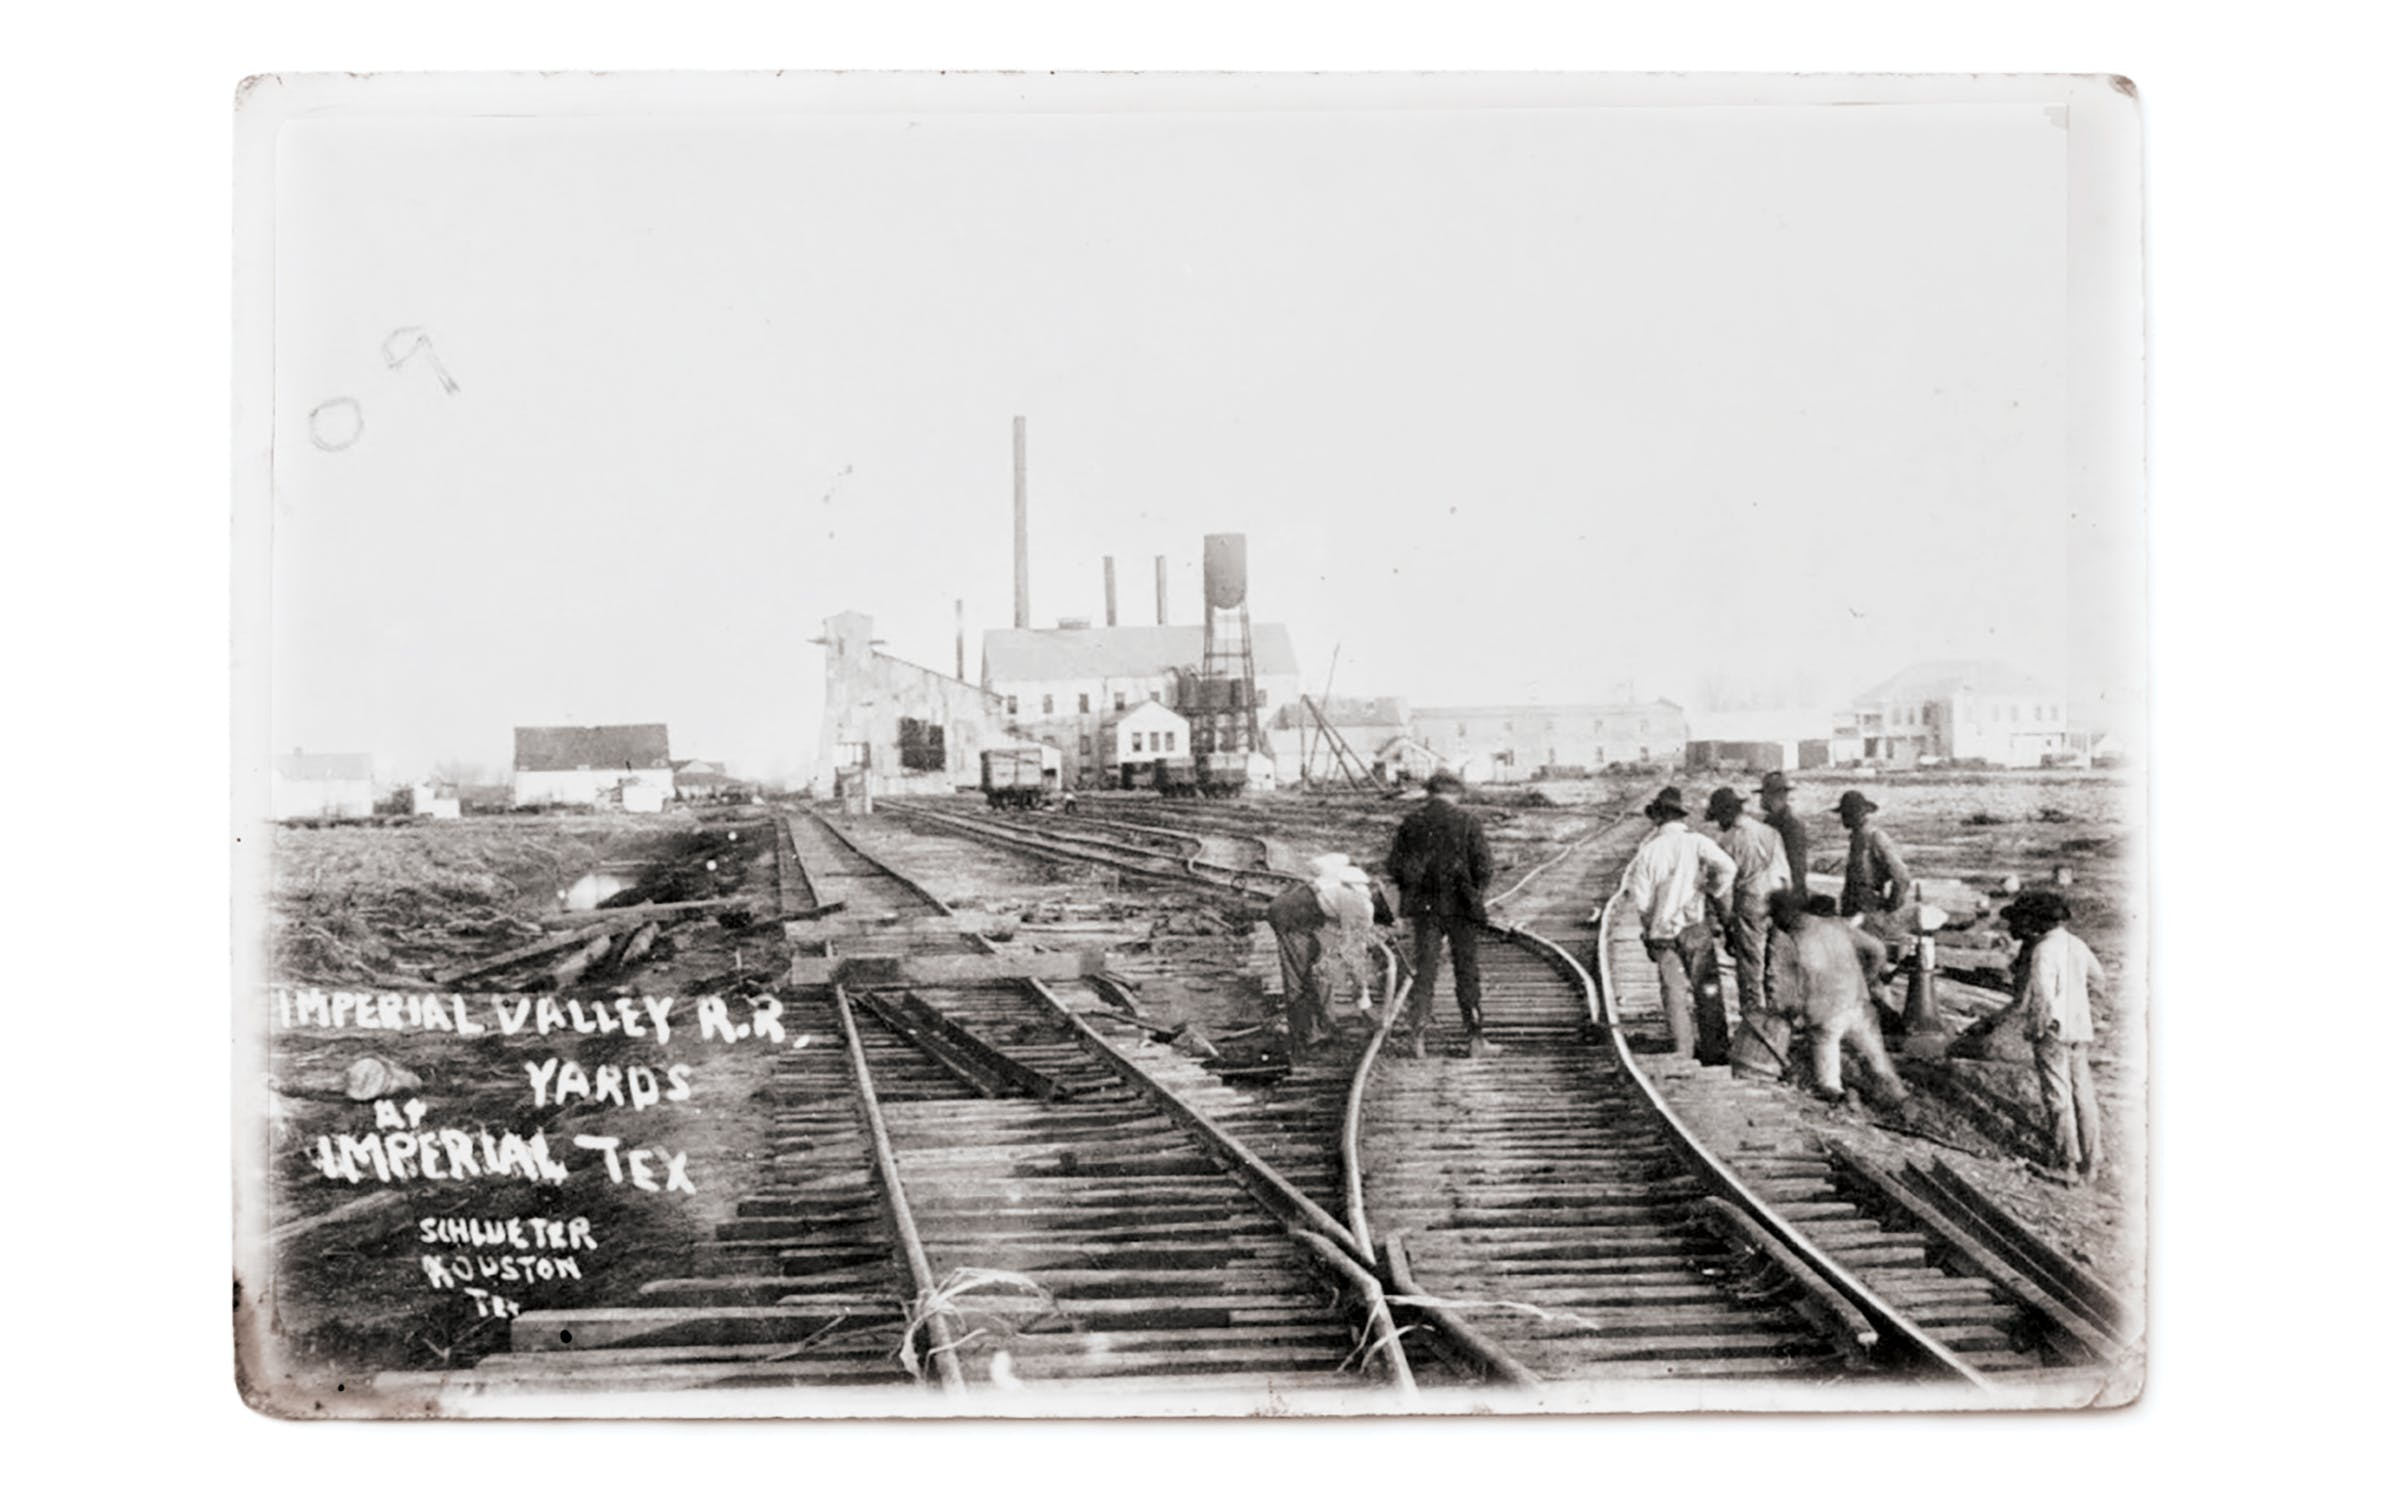 A crew repairing Sugar Land Railroad lines in 1909. (The mill can be seen in the distance.)